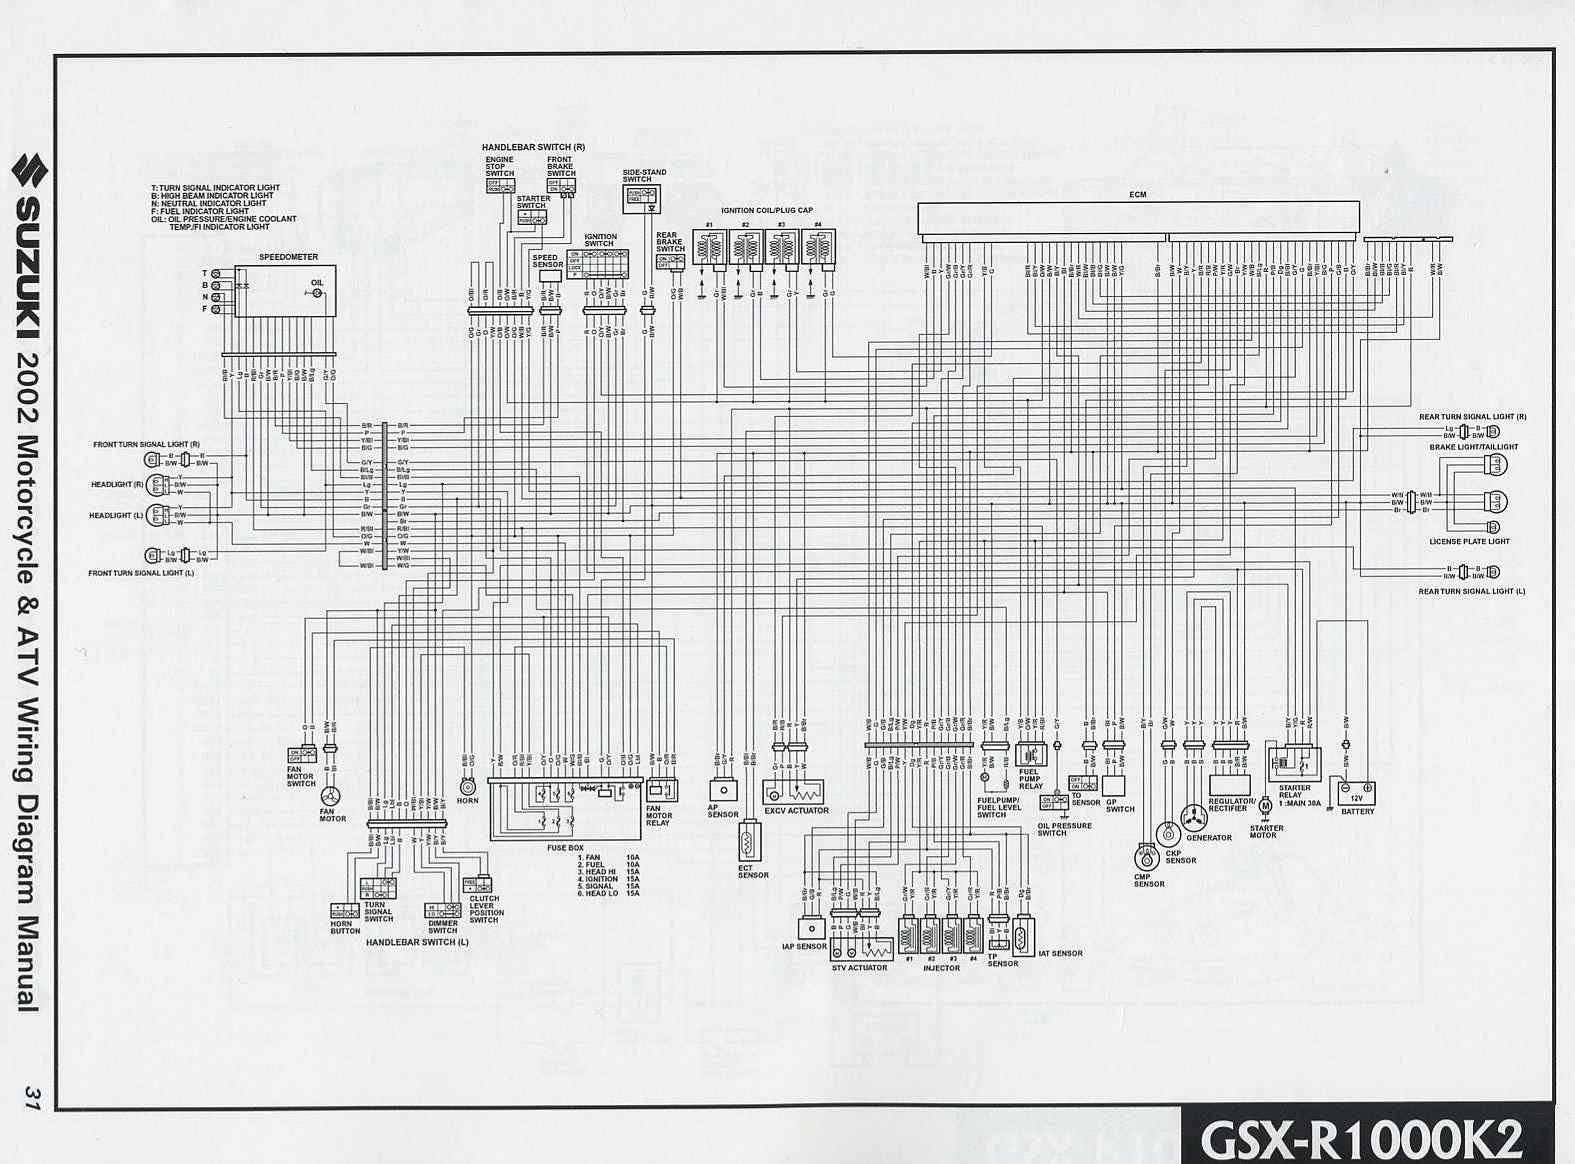 2005 gsxr 1000 wiring diagram expert schematics diagram rh atcobennettrecoveries com 2005 gsxr 600 service manual 2005 gsxr 750 service manual